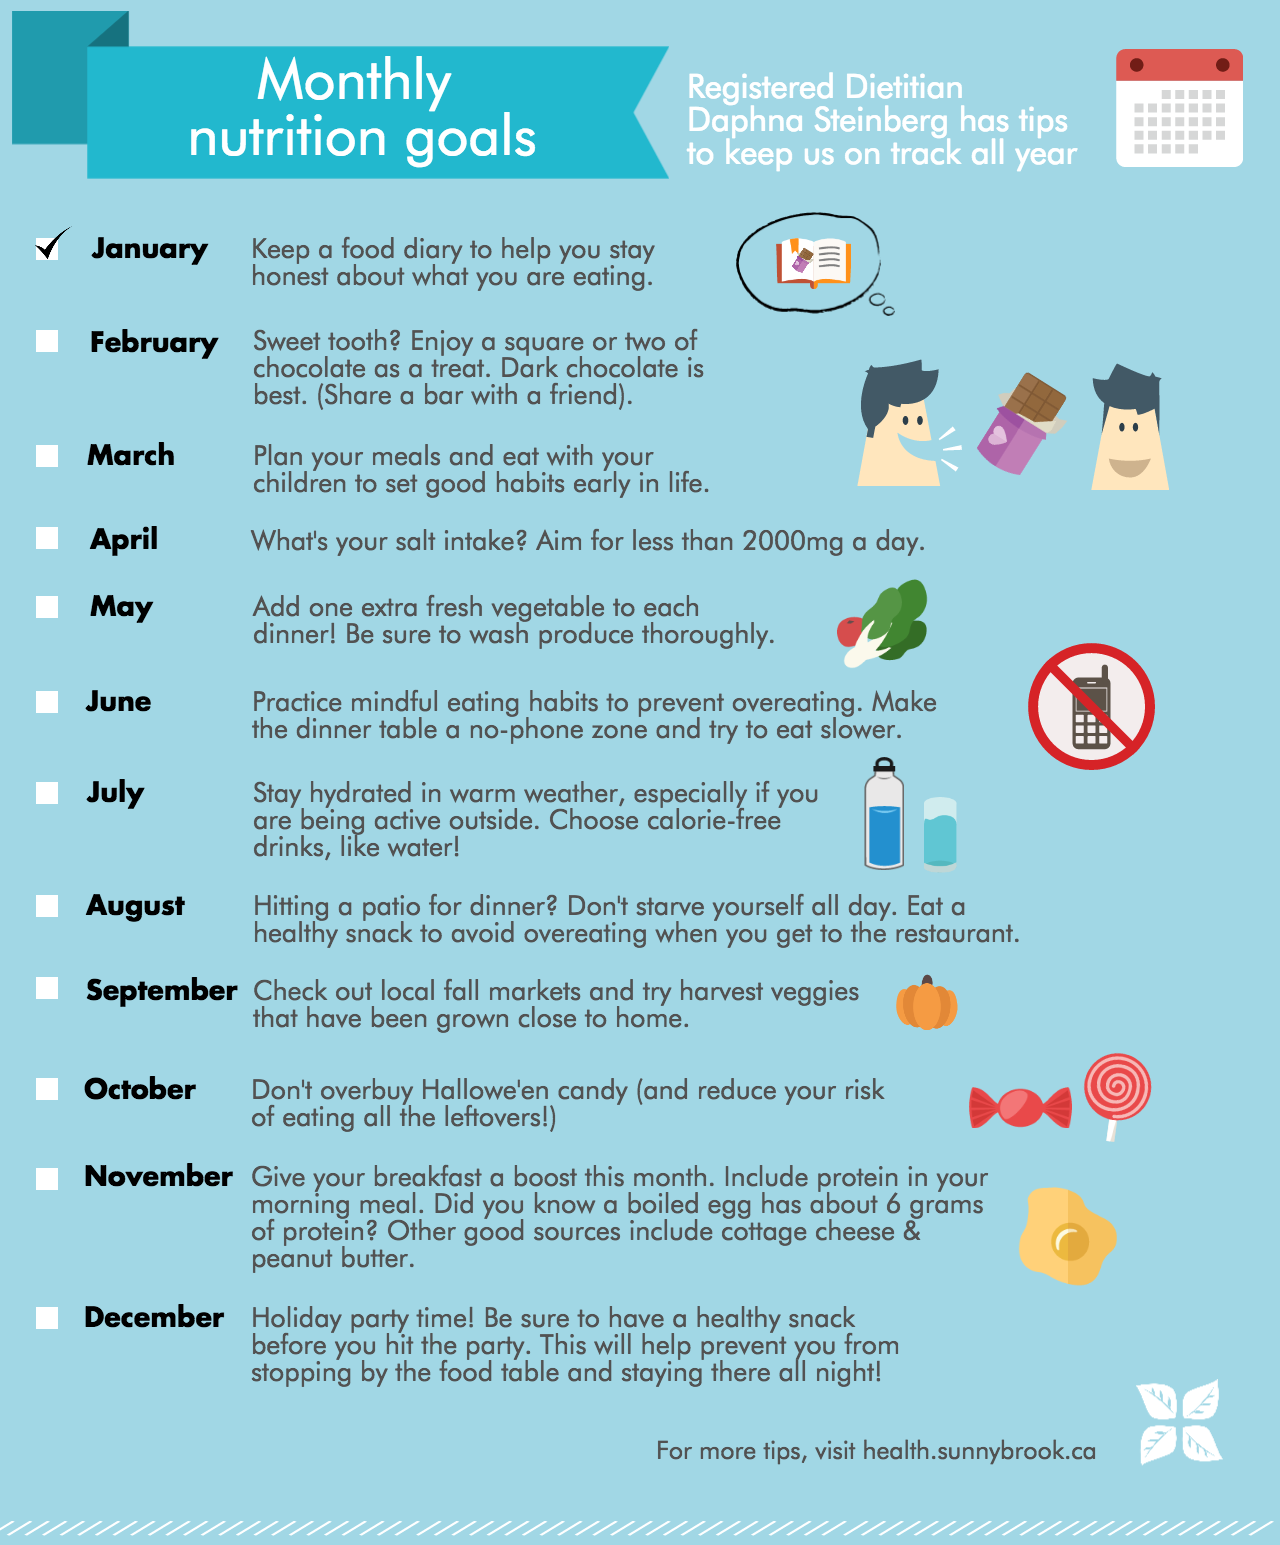 Monthly Tips For Healthy Eating